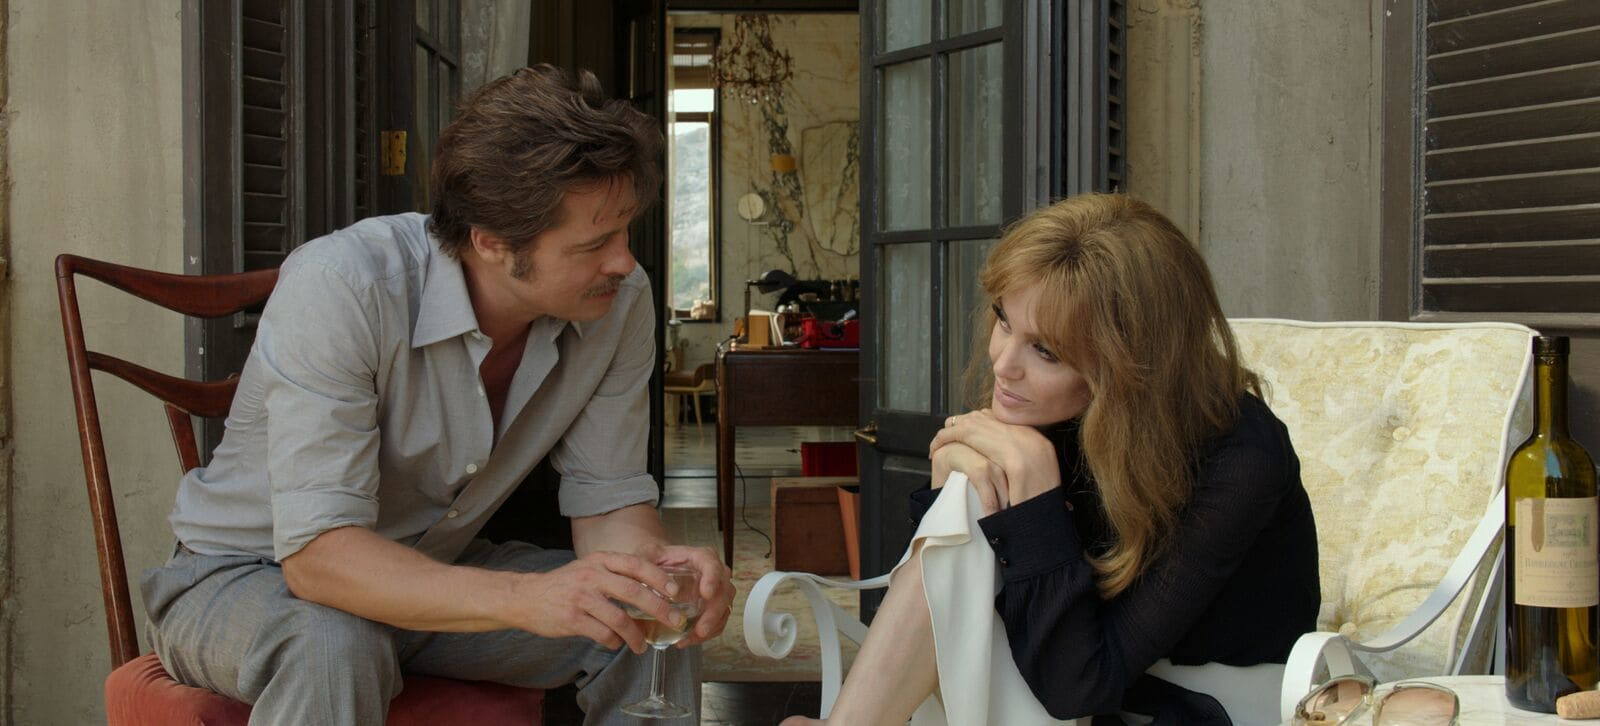 Brad Pitt and Angelina Jolie in By The Sea film